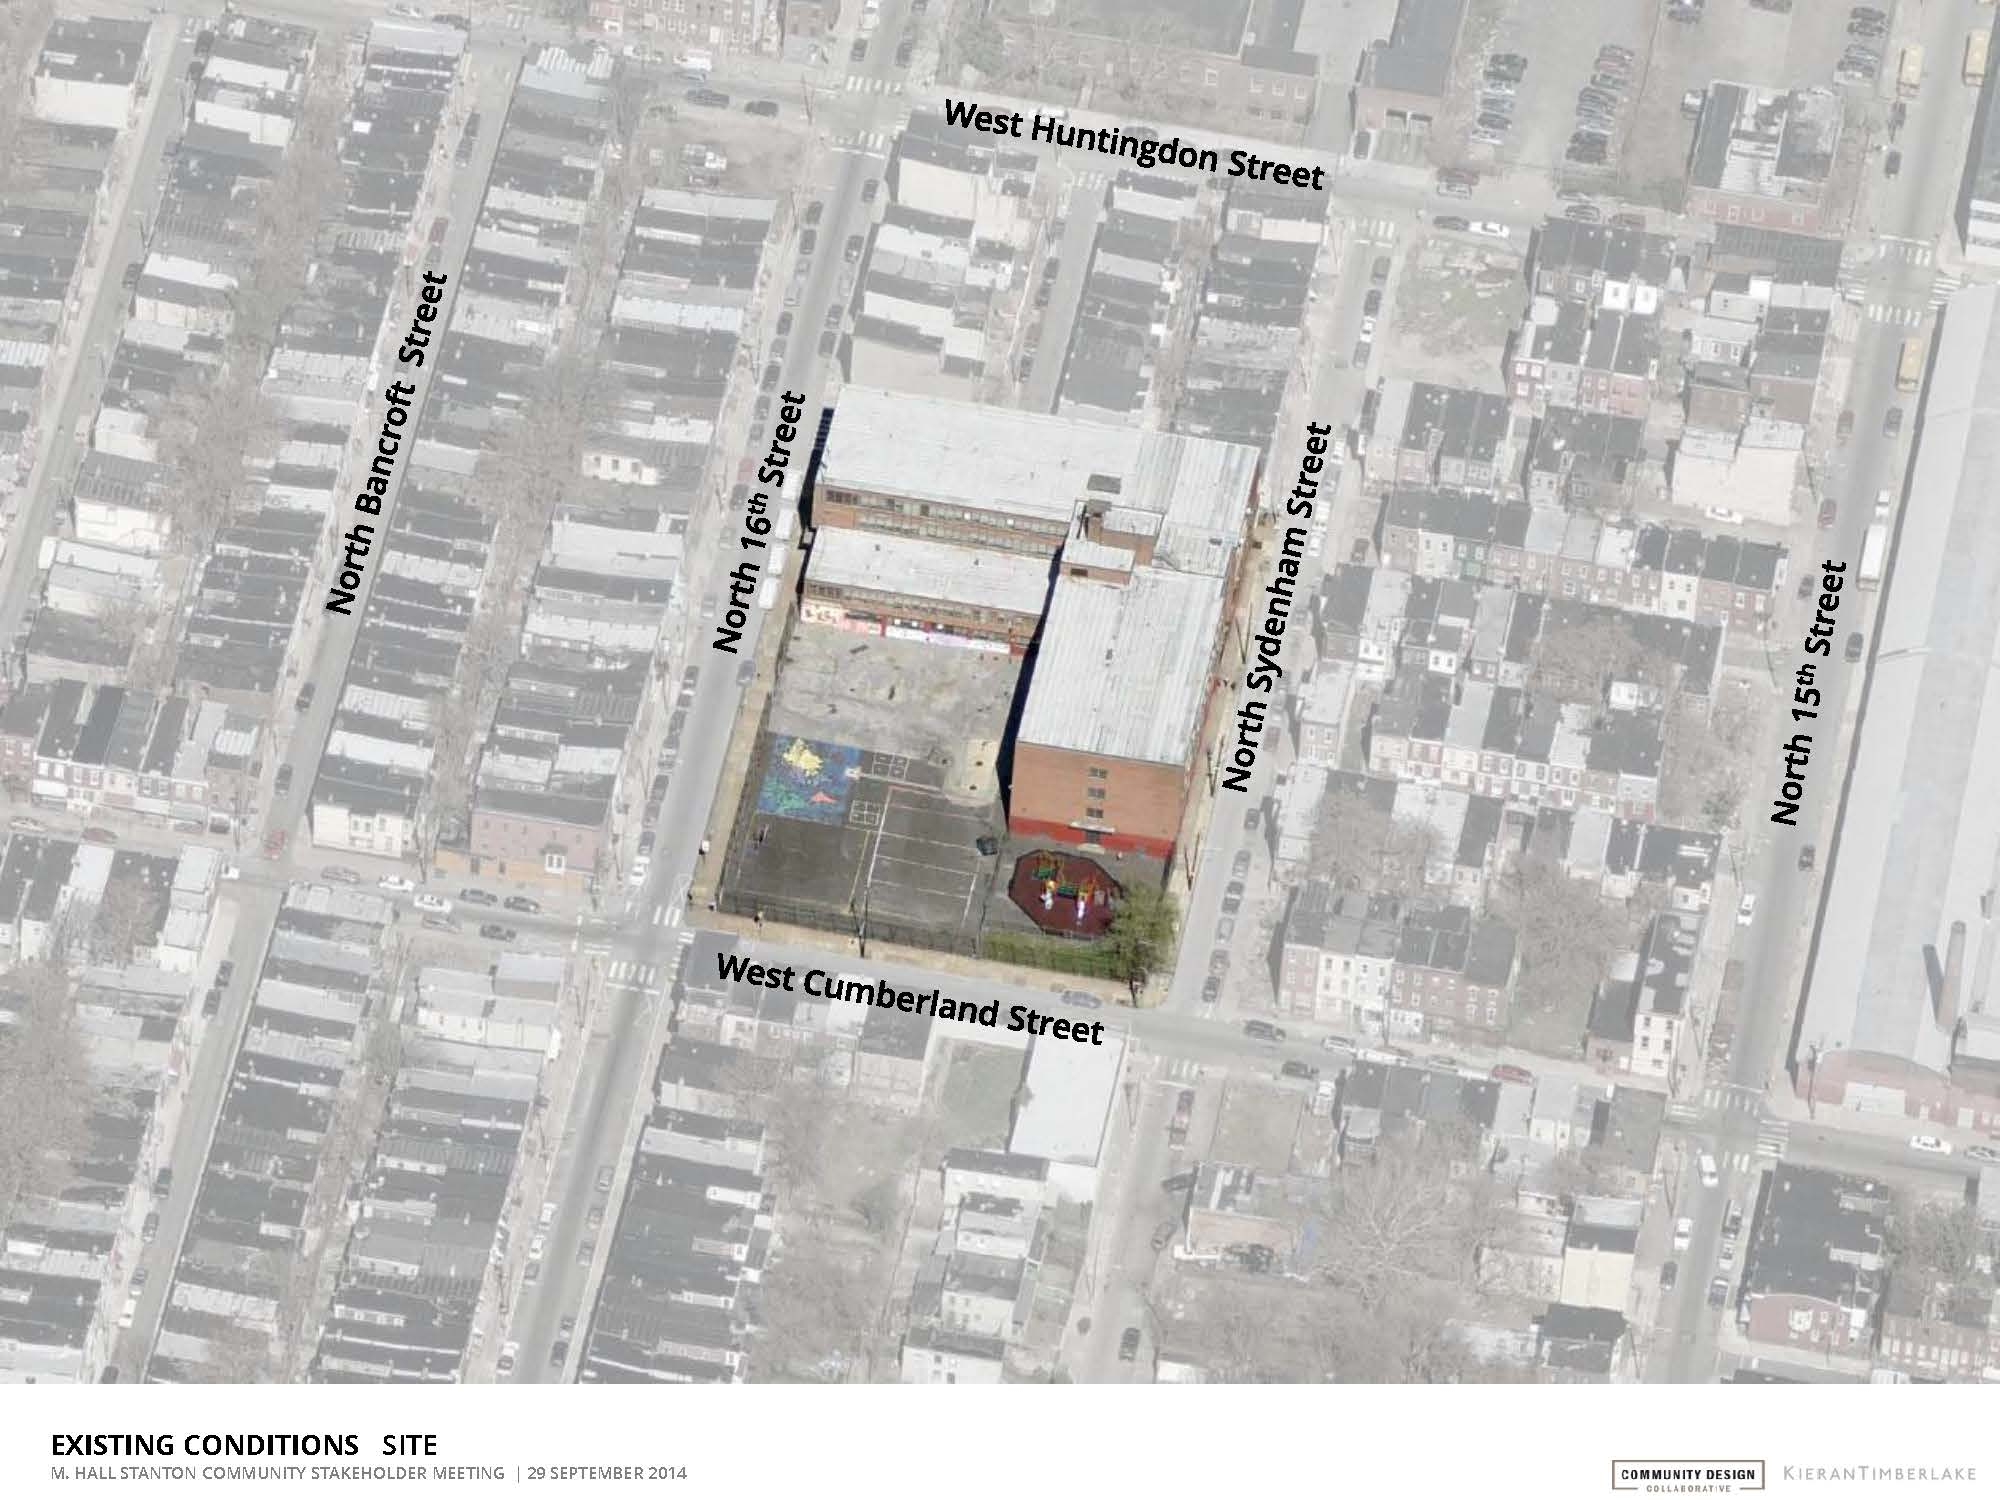 140929 Stanton Community Stakeholder Meeting-Revised_Page_19